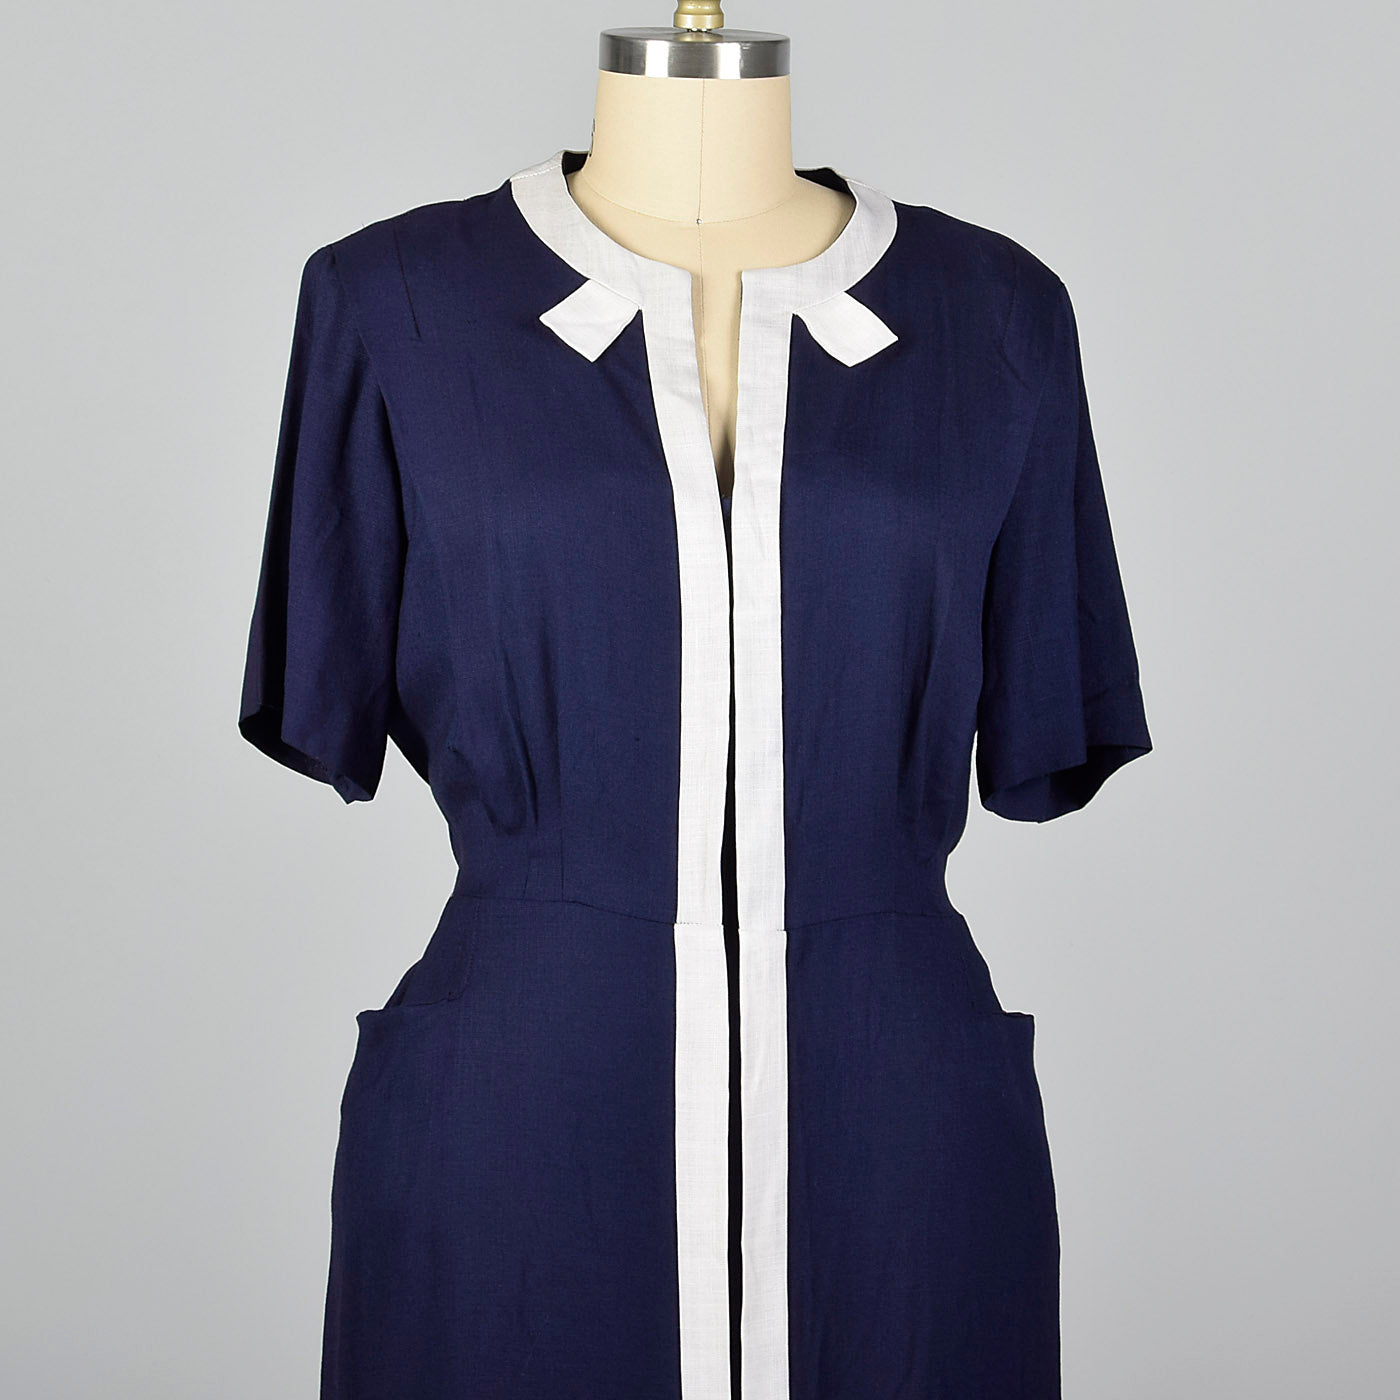 1950s Deadstock Navy Dress with White Trim